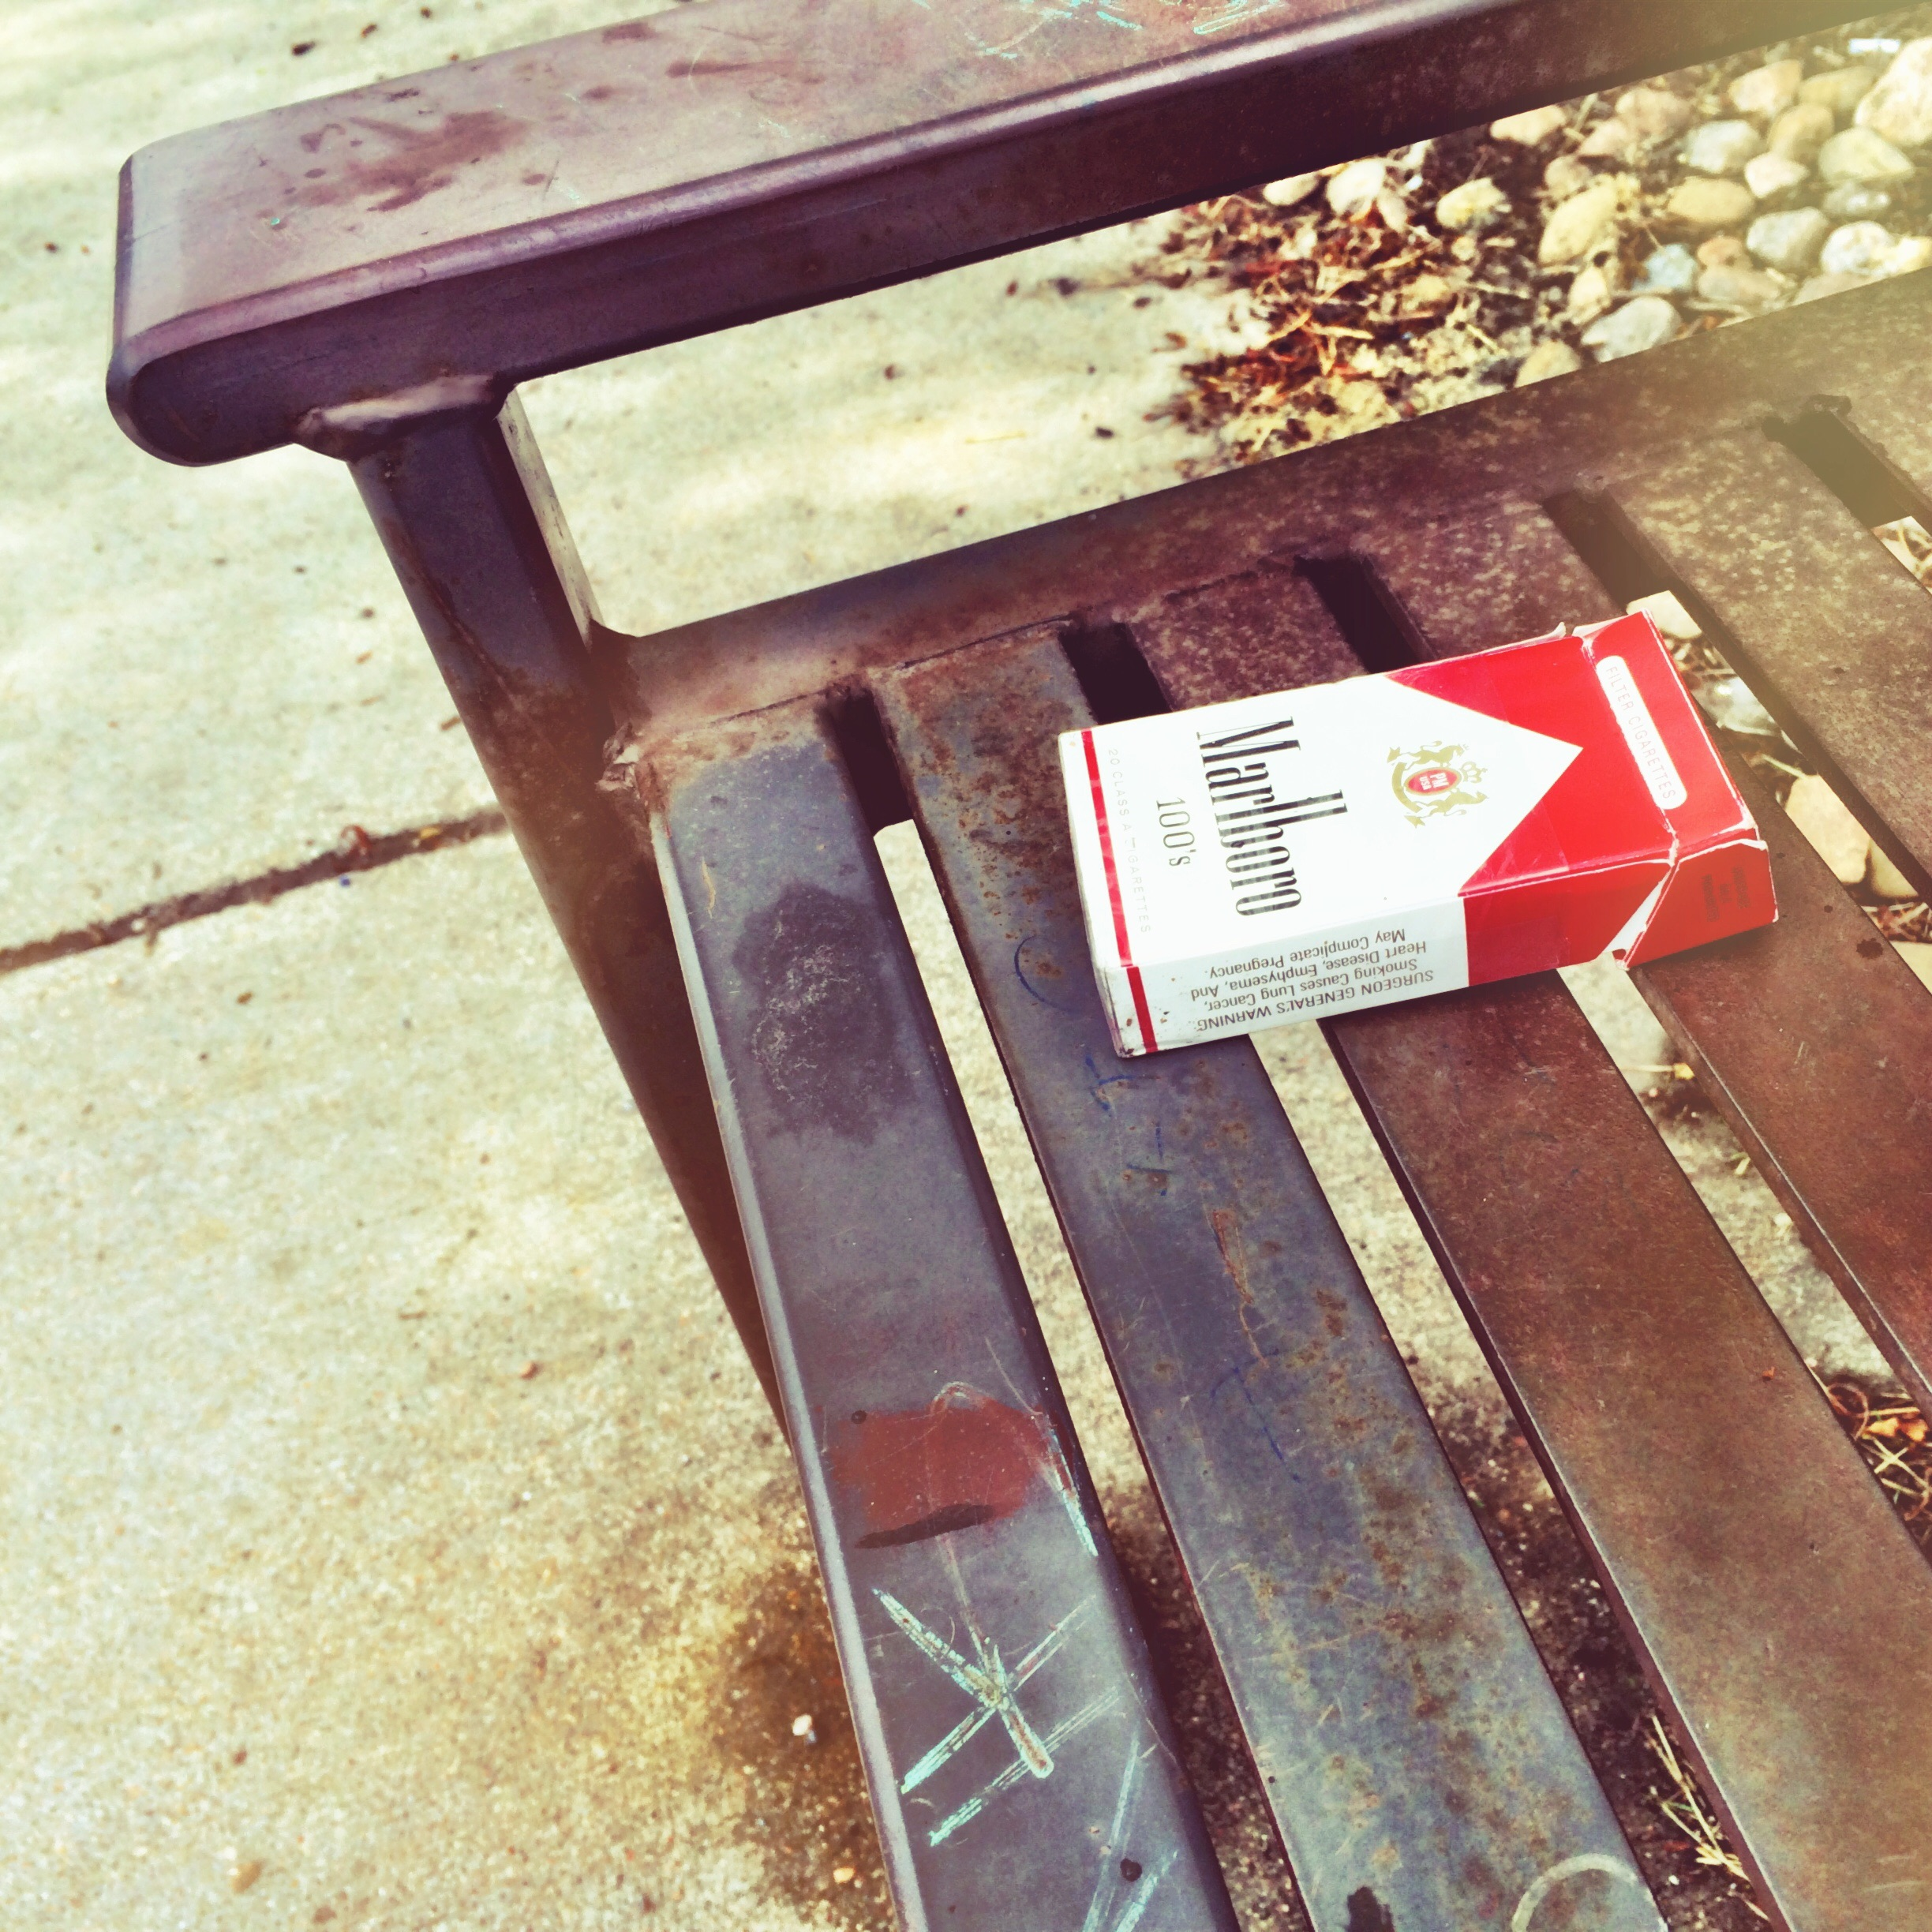 Butts at a bus stop - Marlboro Reds